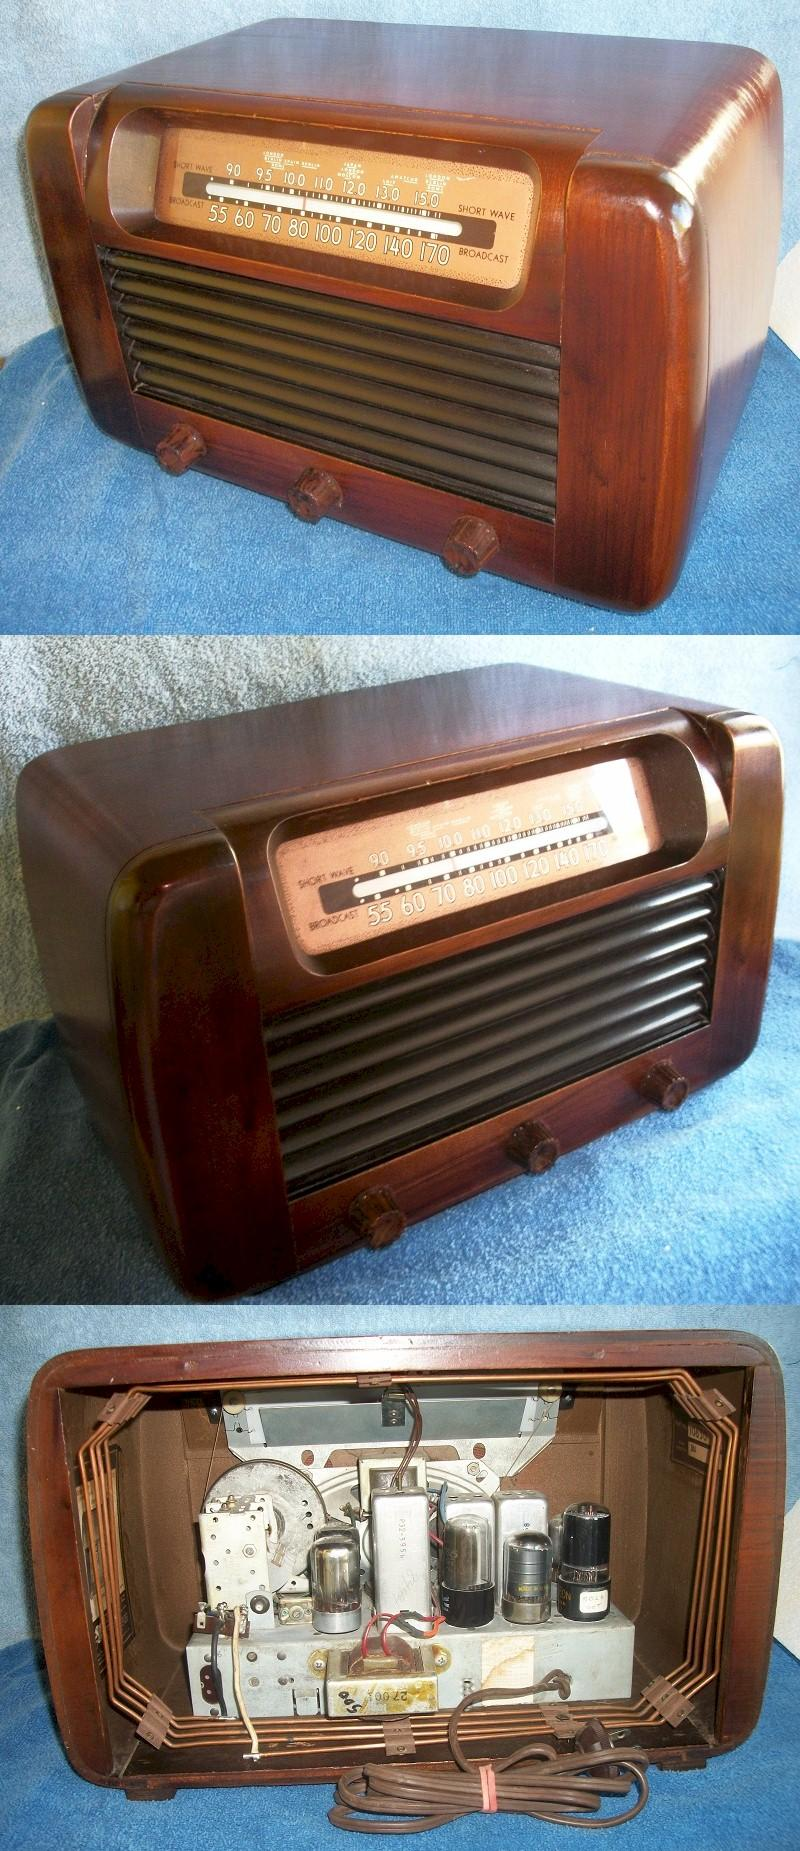 Philco 46-427 AM-Shortwave (1946)